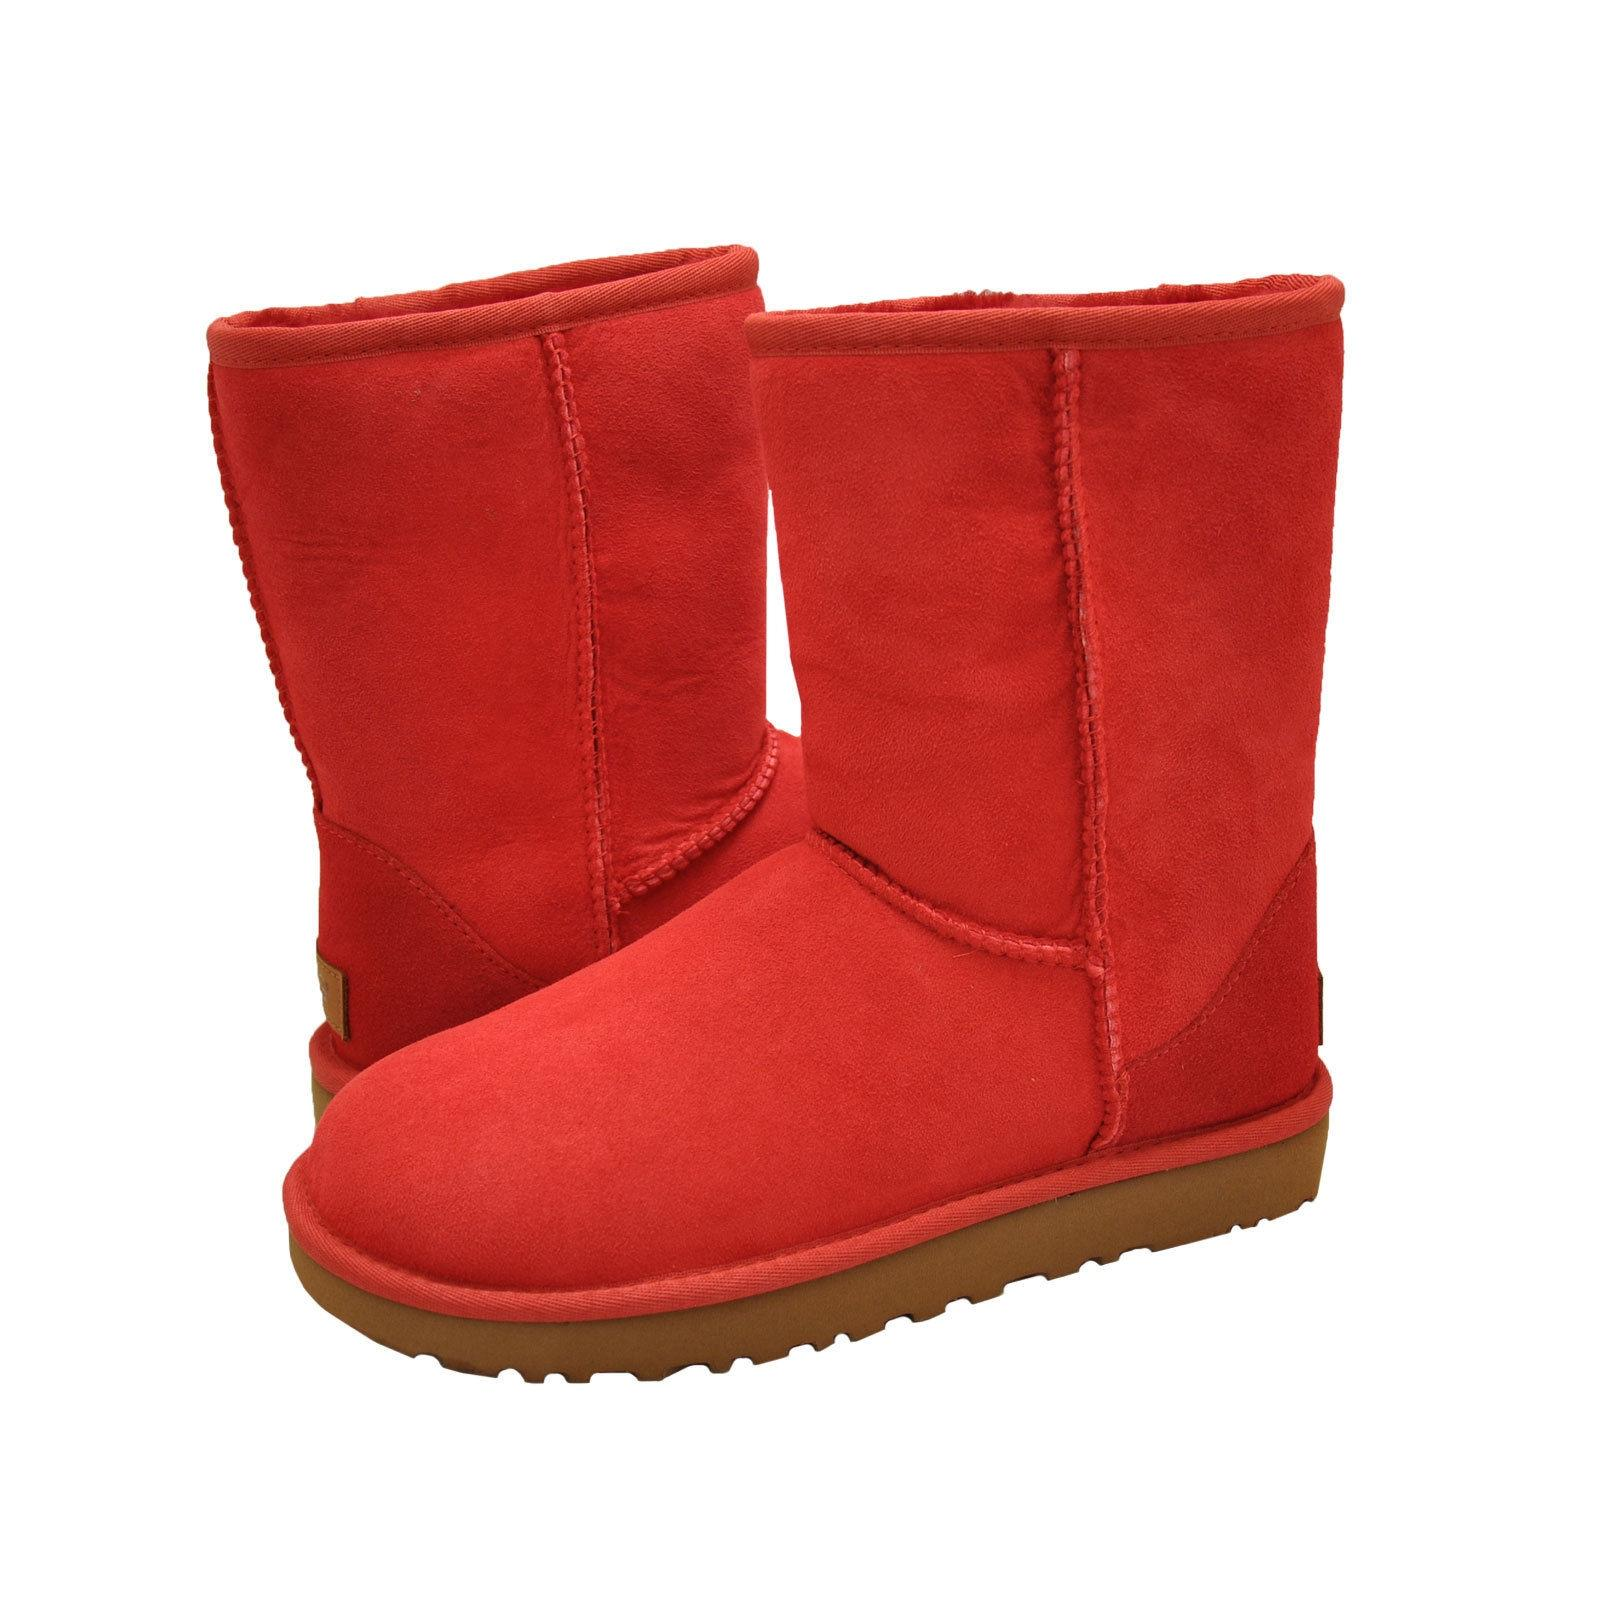 UGG Australia For Her 1016223 Size 6 Ribbon Red Boots ...